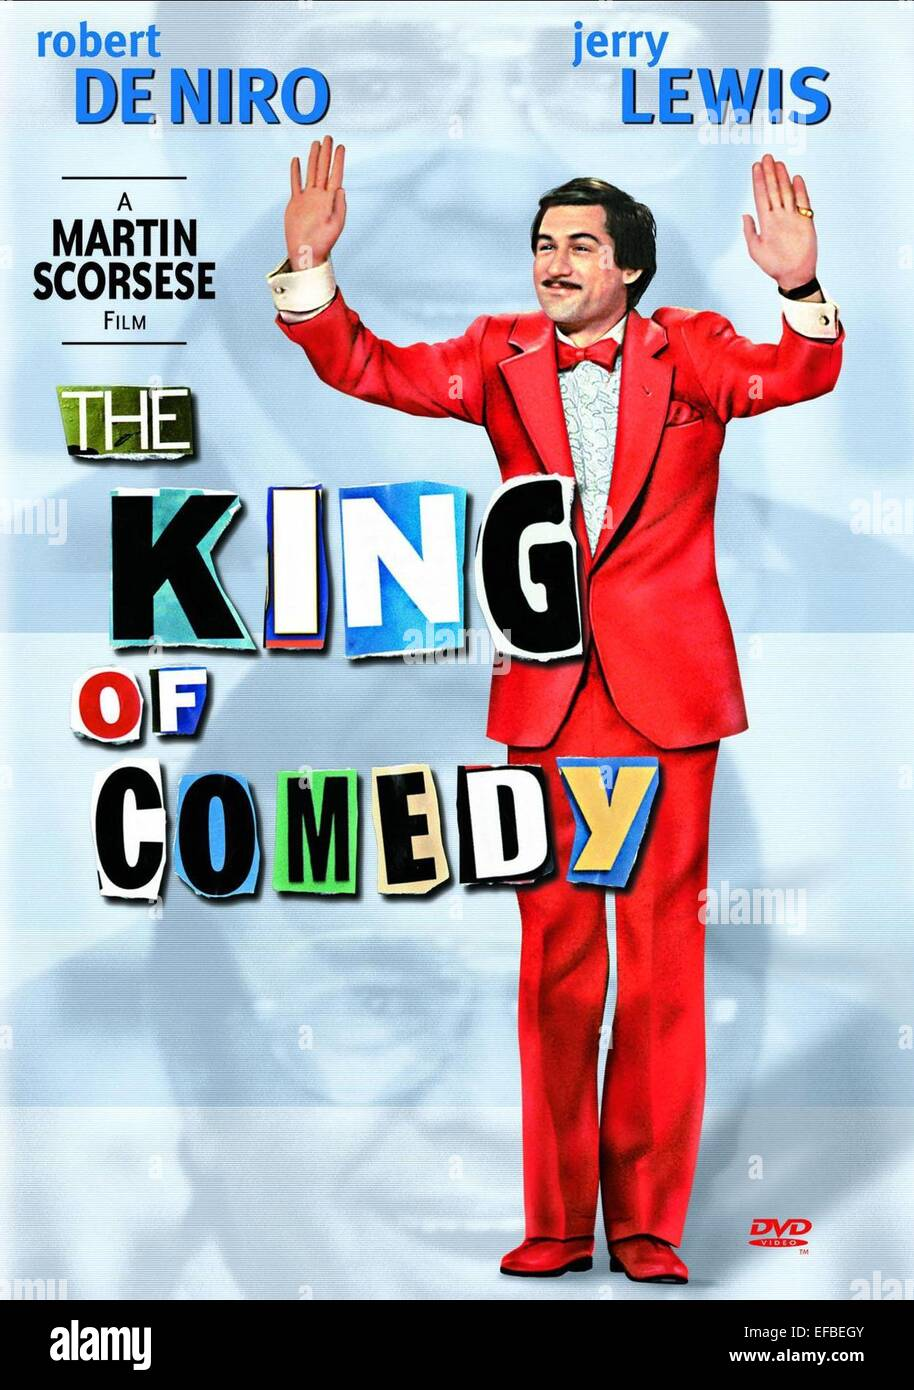 Robert de niro the king of comedy